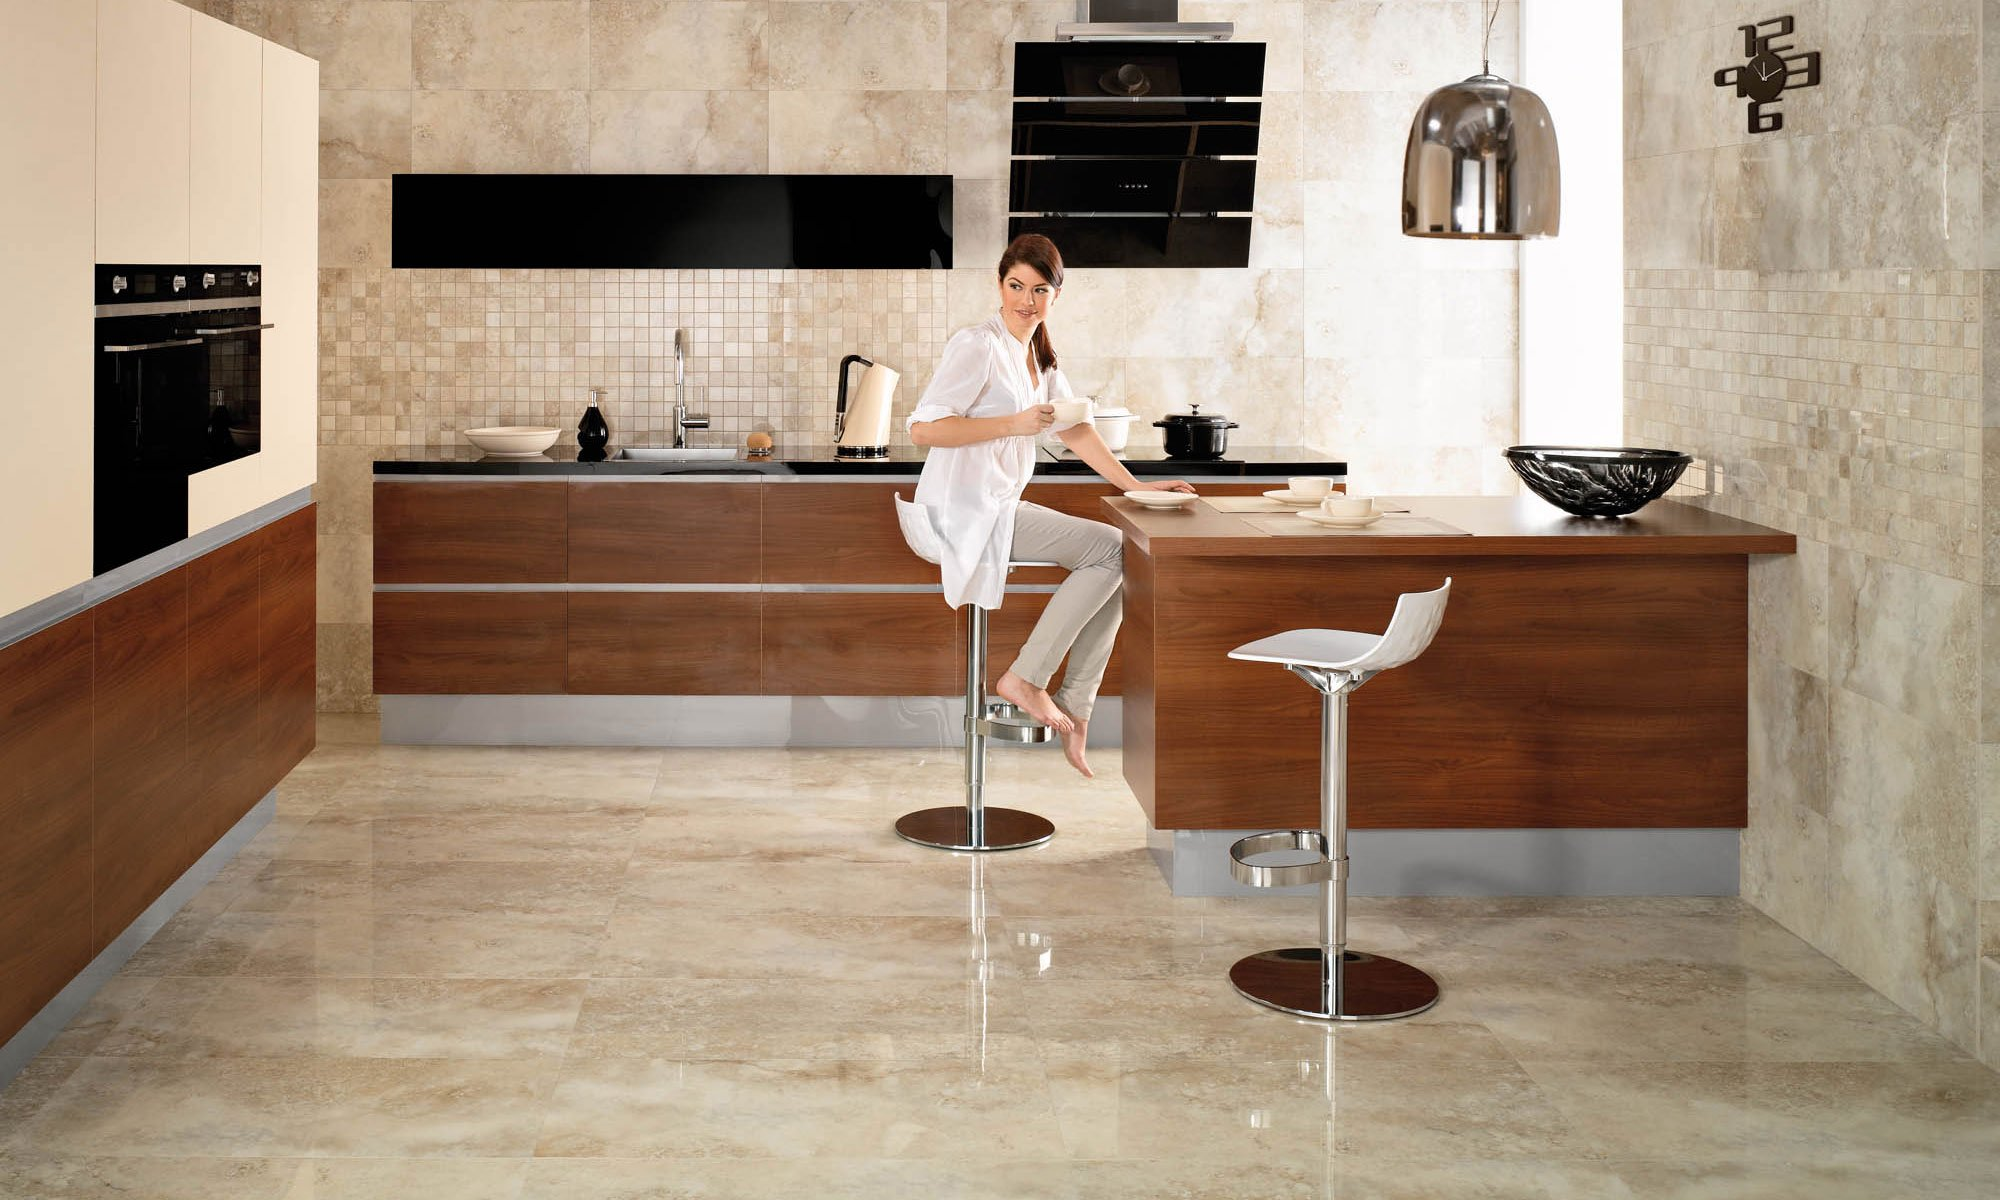 Kitchen remodel san francisco ca engineered flooring flooring dailygadgetfo Choice Image